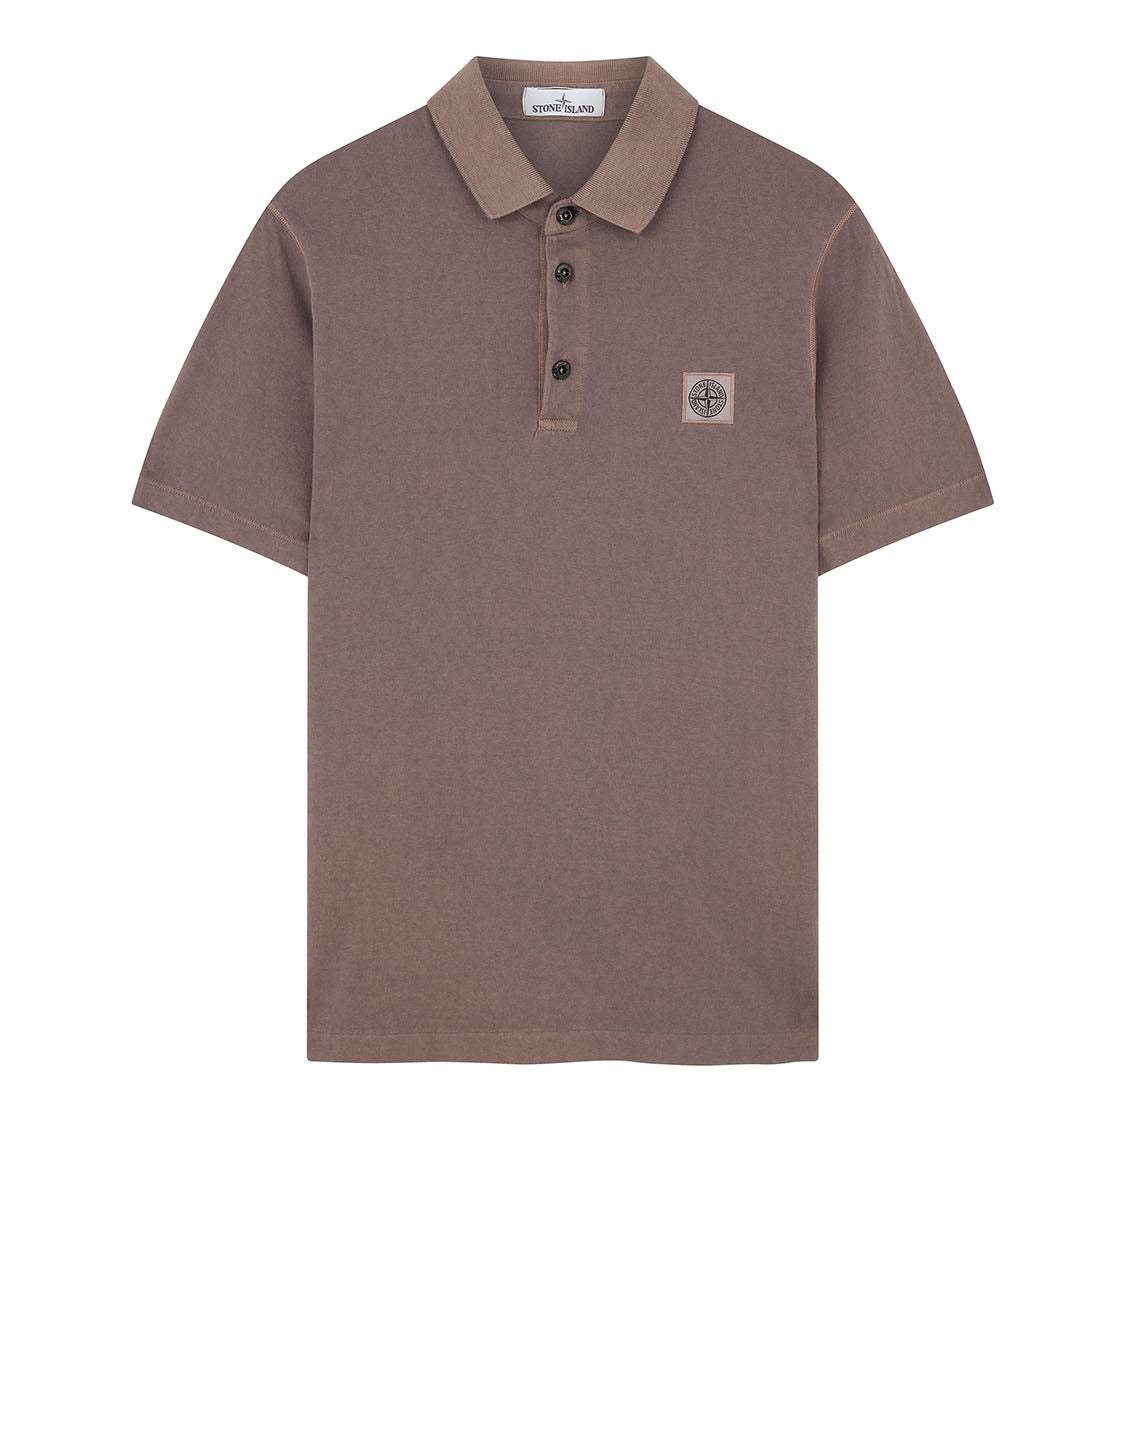 21757 'FISSATO' DYE TREATMENT Polo Shirt in Blue Grey